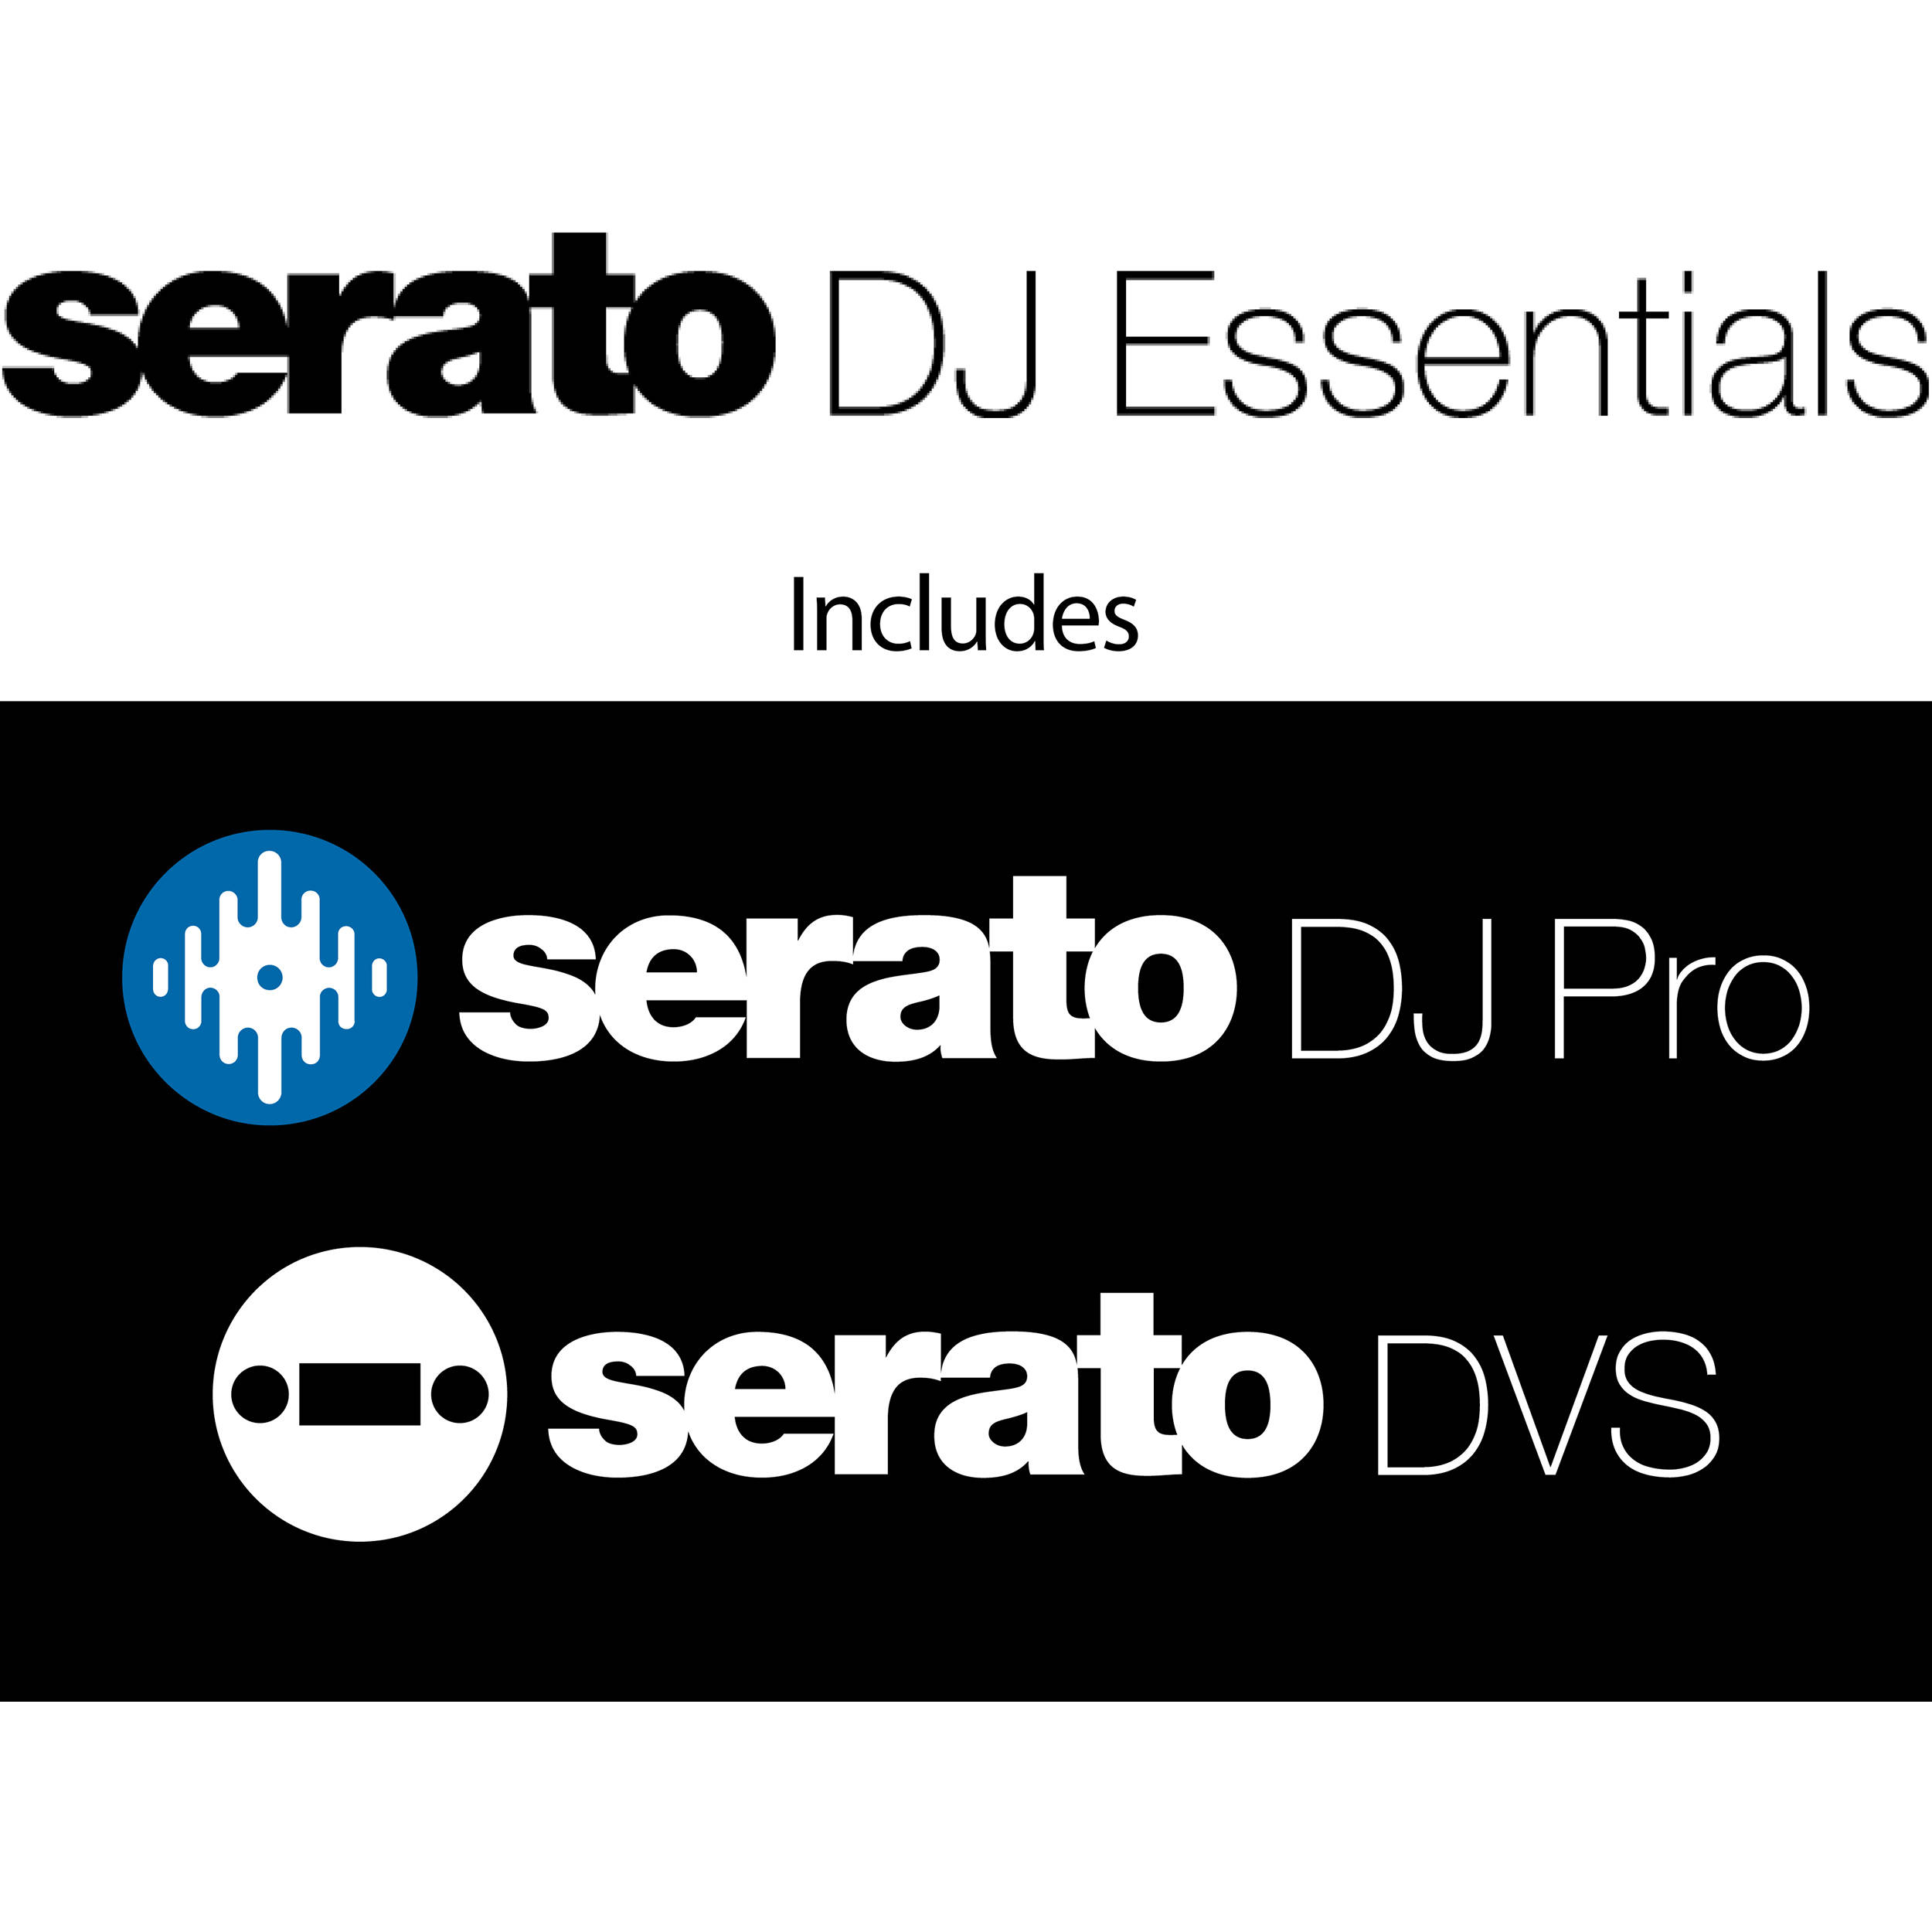 how to use serato dj